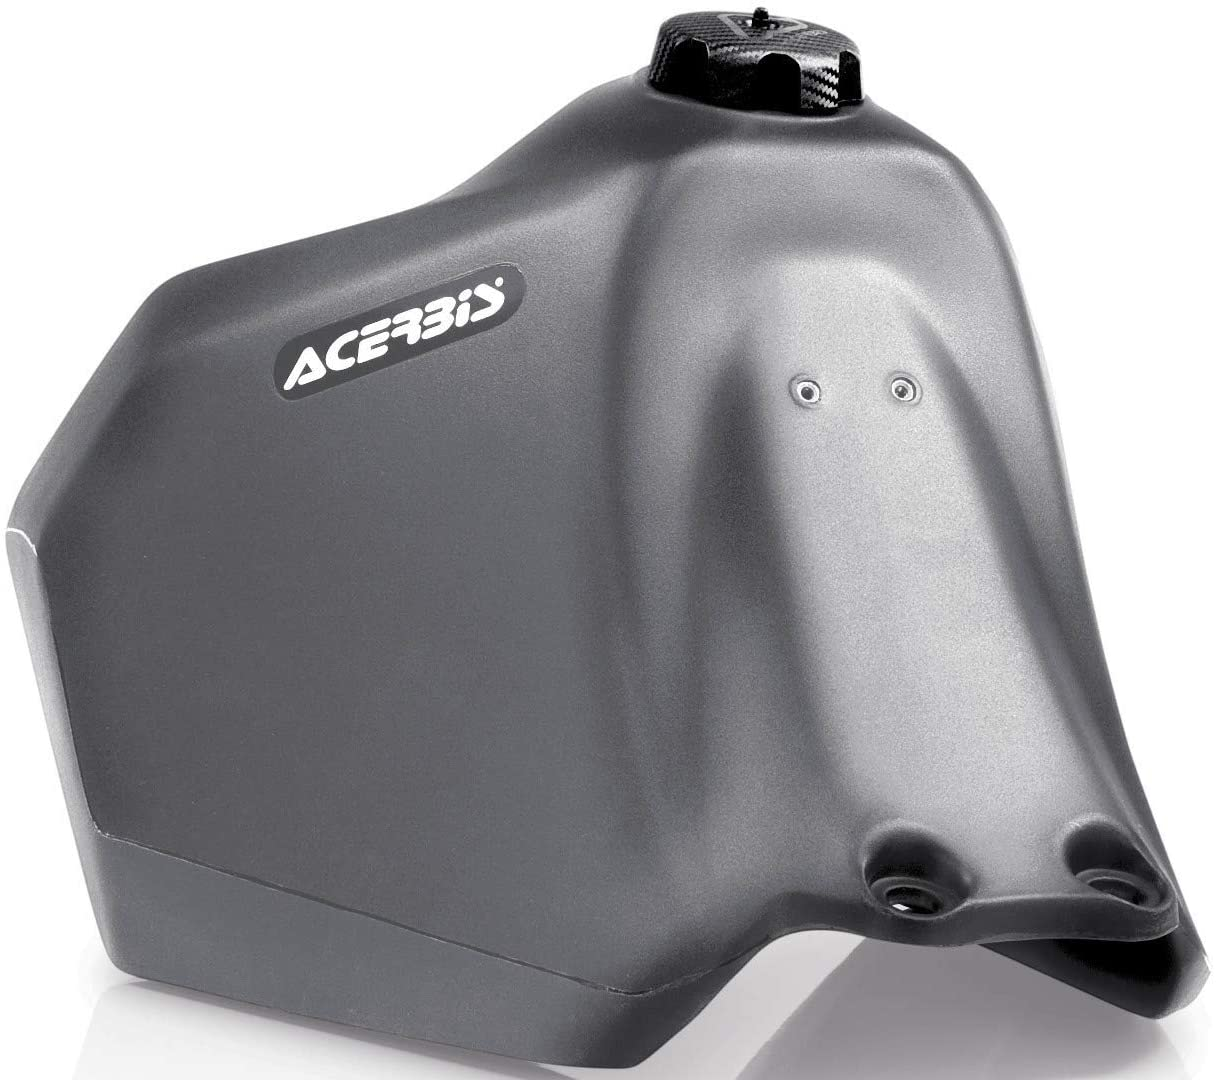 Acerbis Fuel Tank (No California) 5.3 Gallons Grey - Fits: Suzuki DR650S 2015-2019 (No California Shipping)